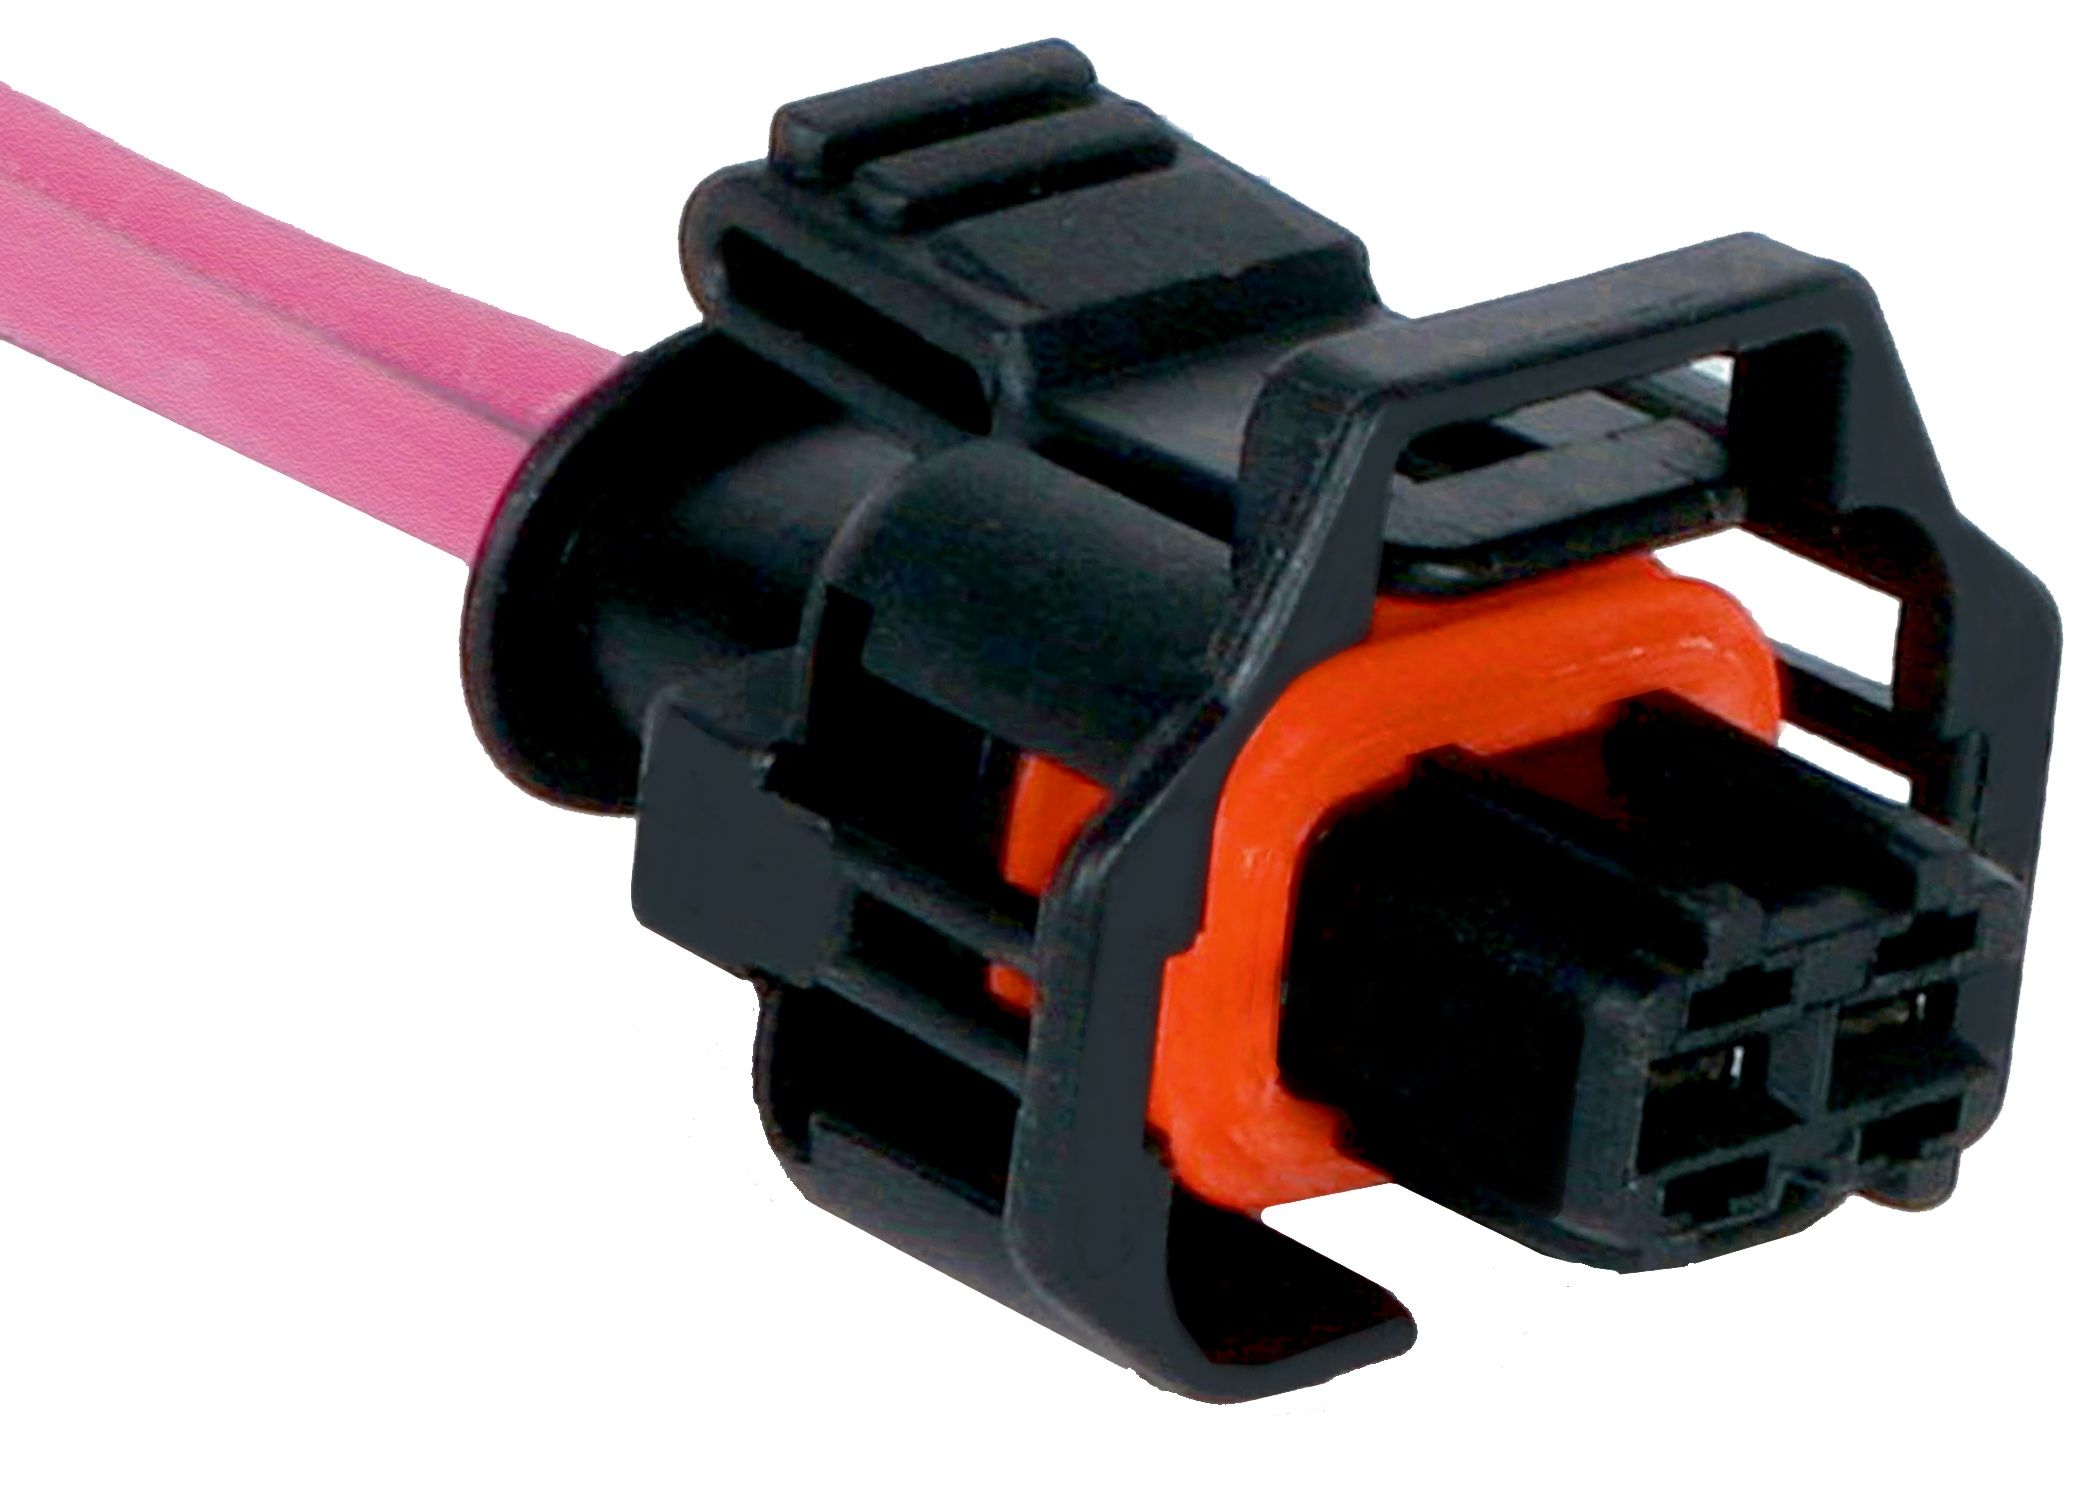 ACDELCO OE SERVICE - Fuel Shut Off Solenoid Connector - DCB PT2183